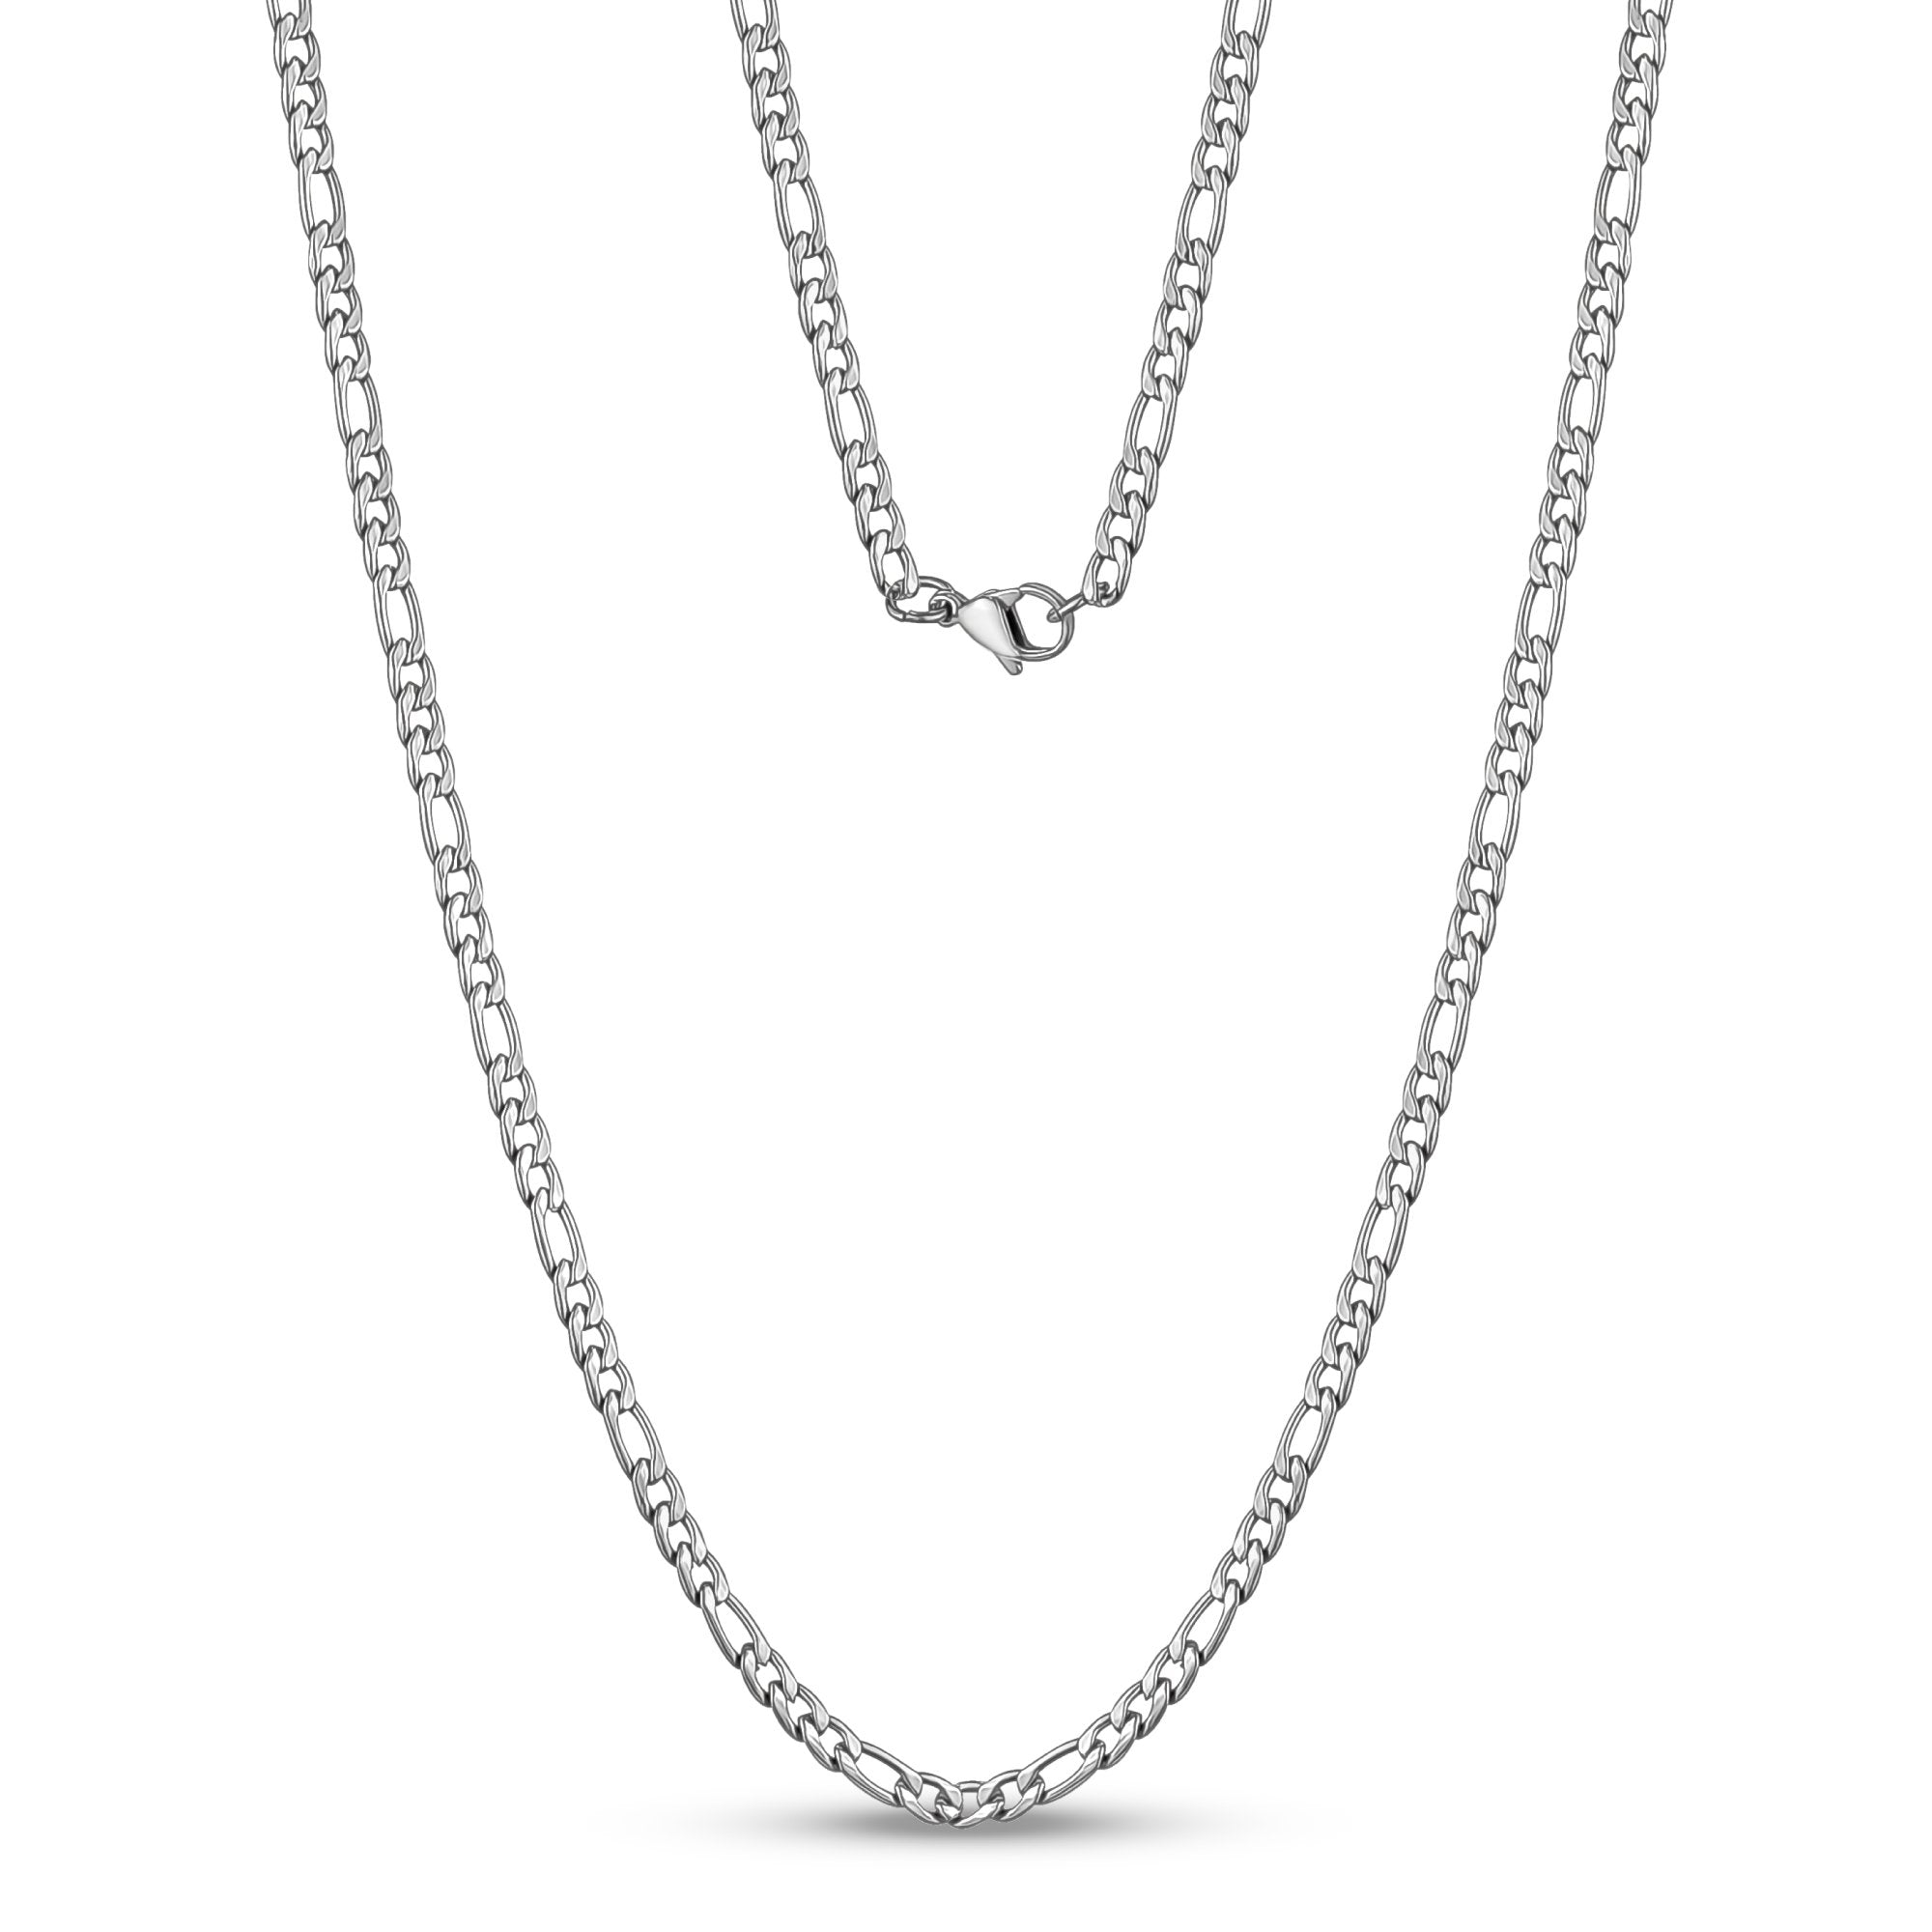 Unisex Necklaces - 3.5mm Stainless Steel Figaro Link Chain Necklace